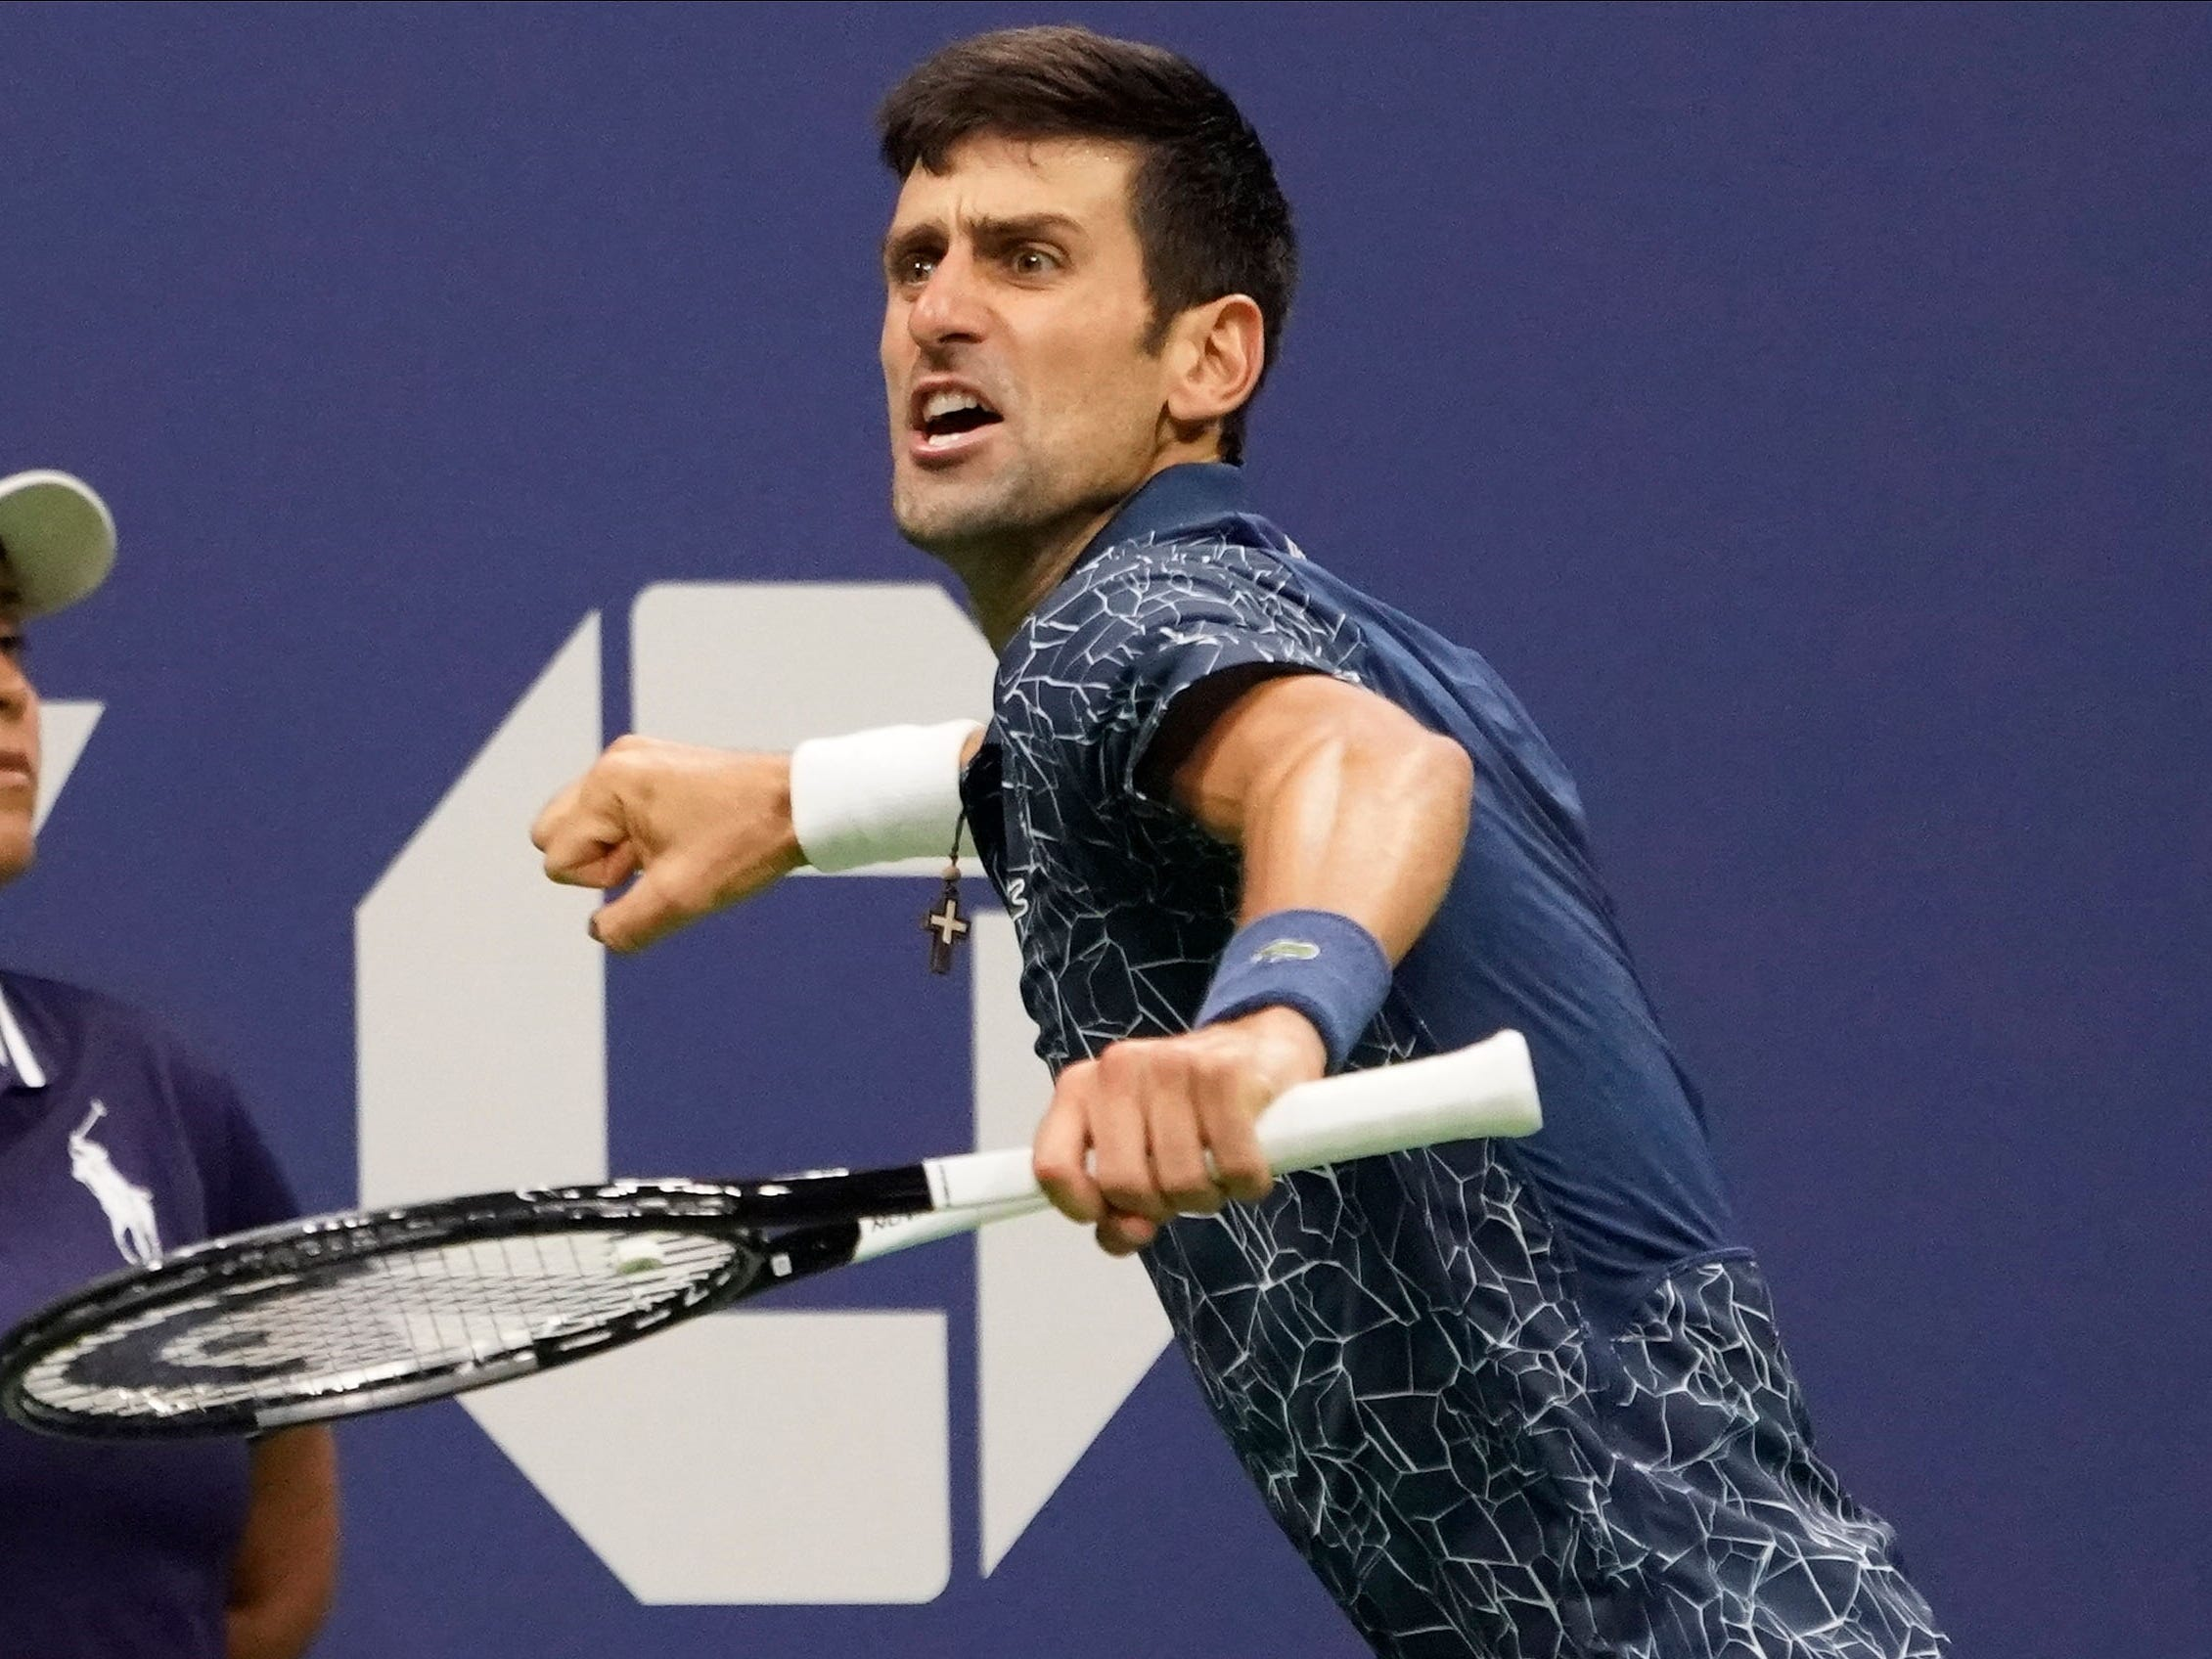 Novak Djokovic gets fired up after a big point against Juan Martin del Potro.